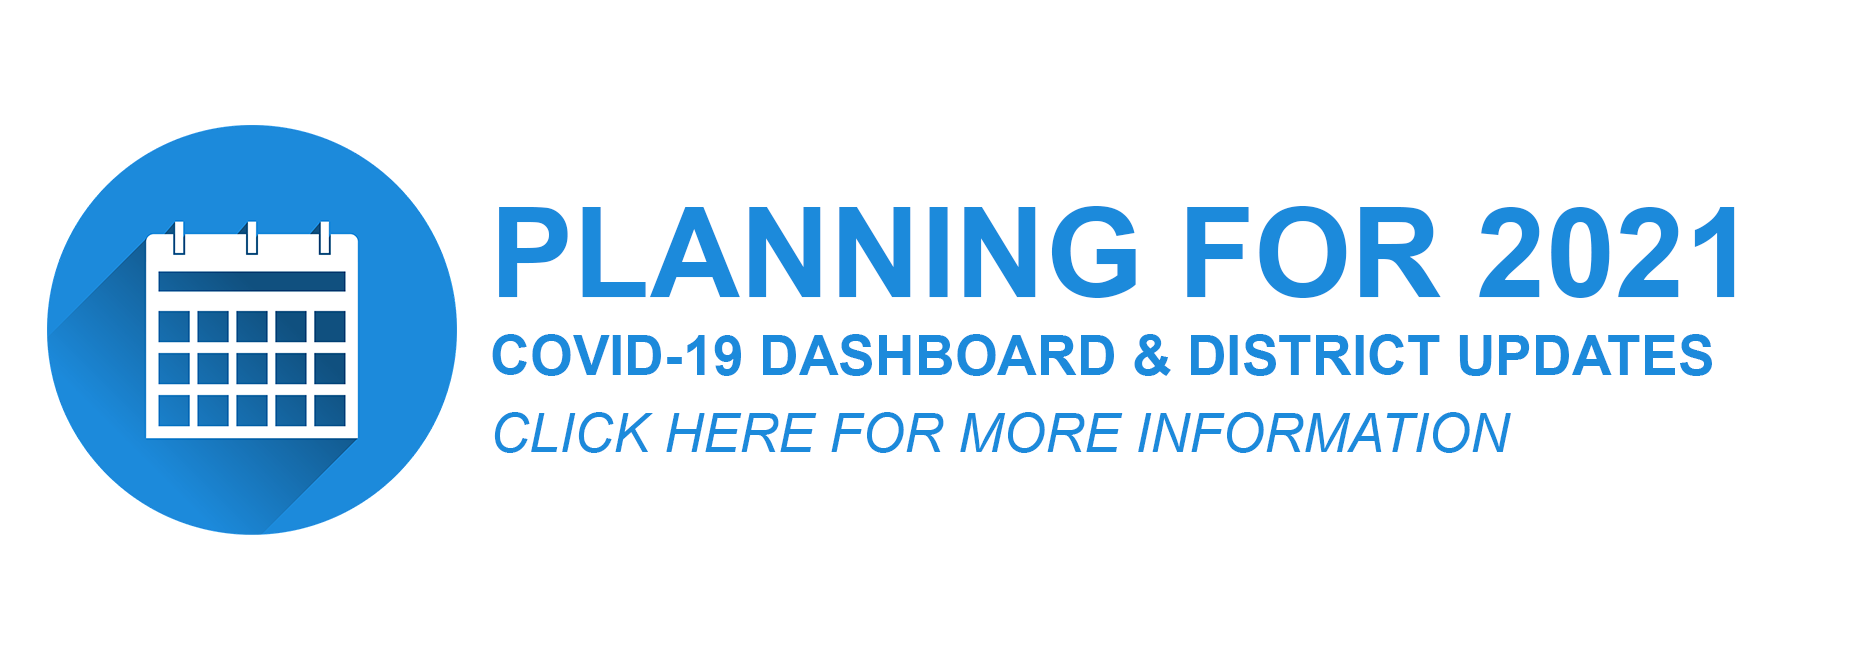 Planning for 2021. COVID-19 Dashboard and District updates. Click here for more information.